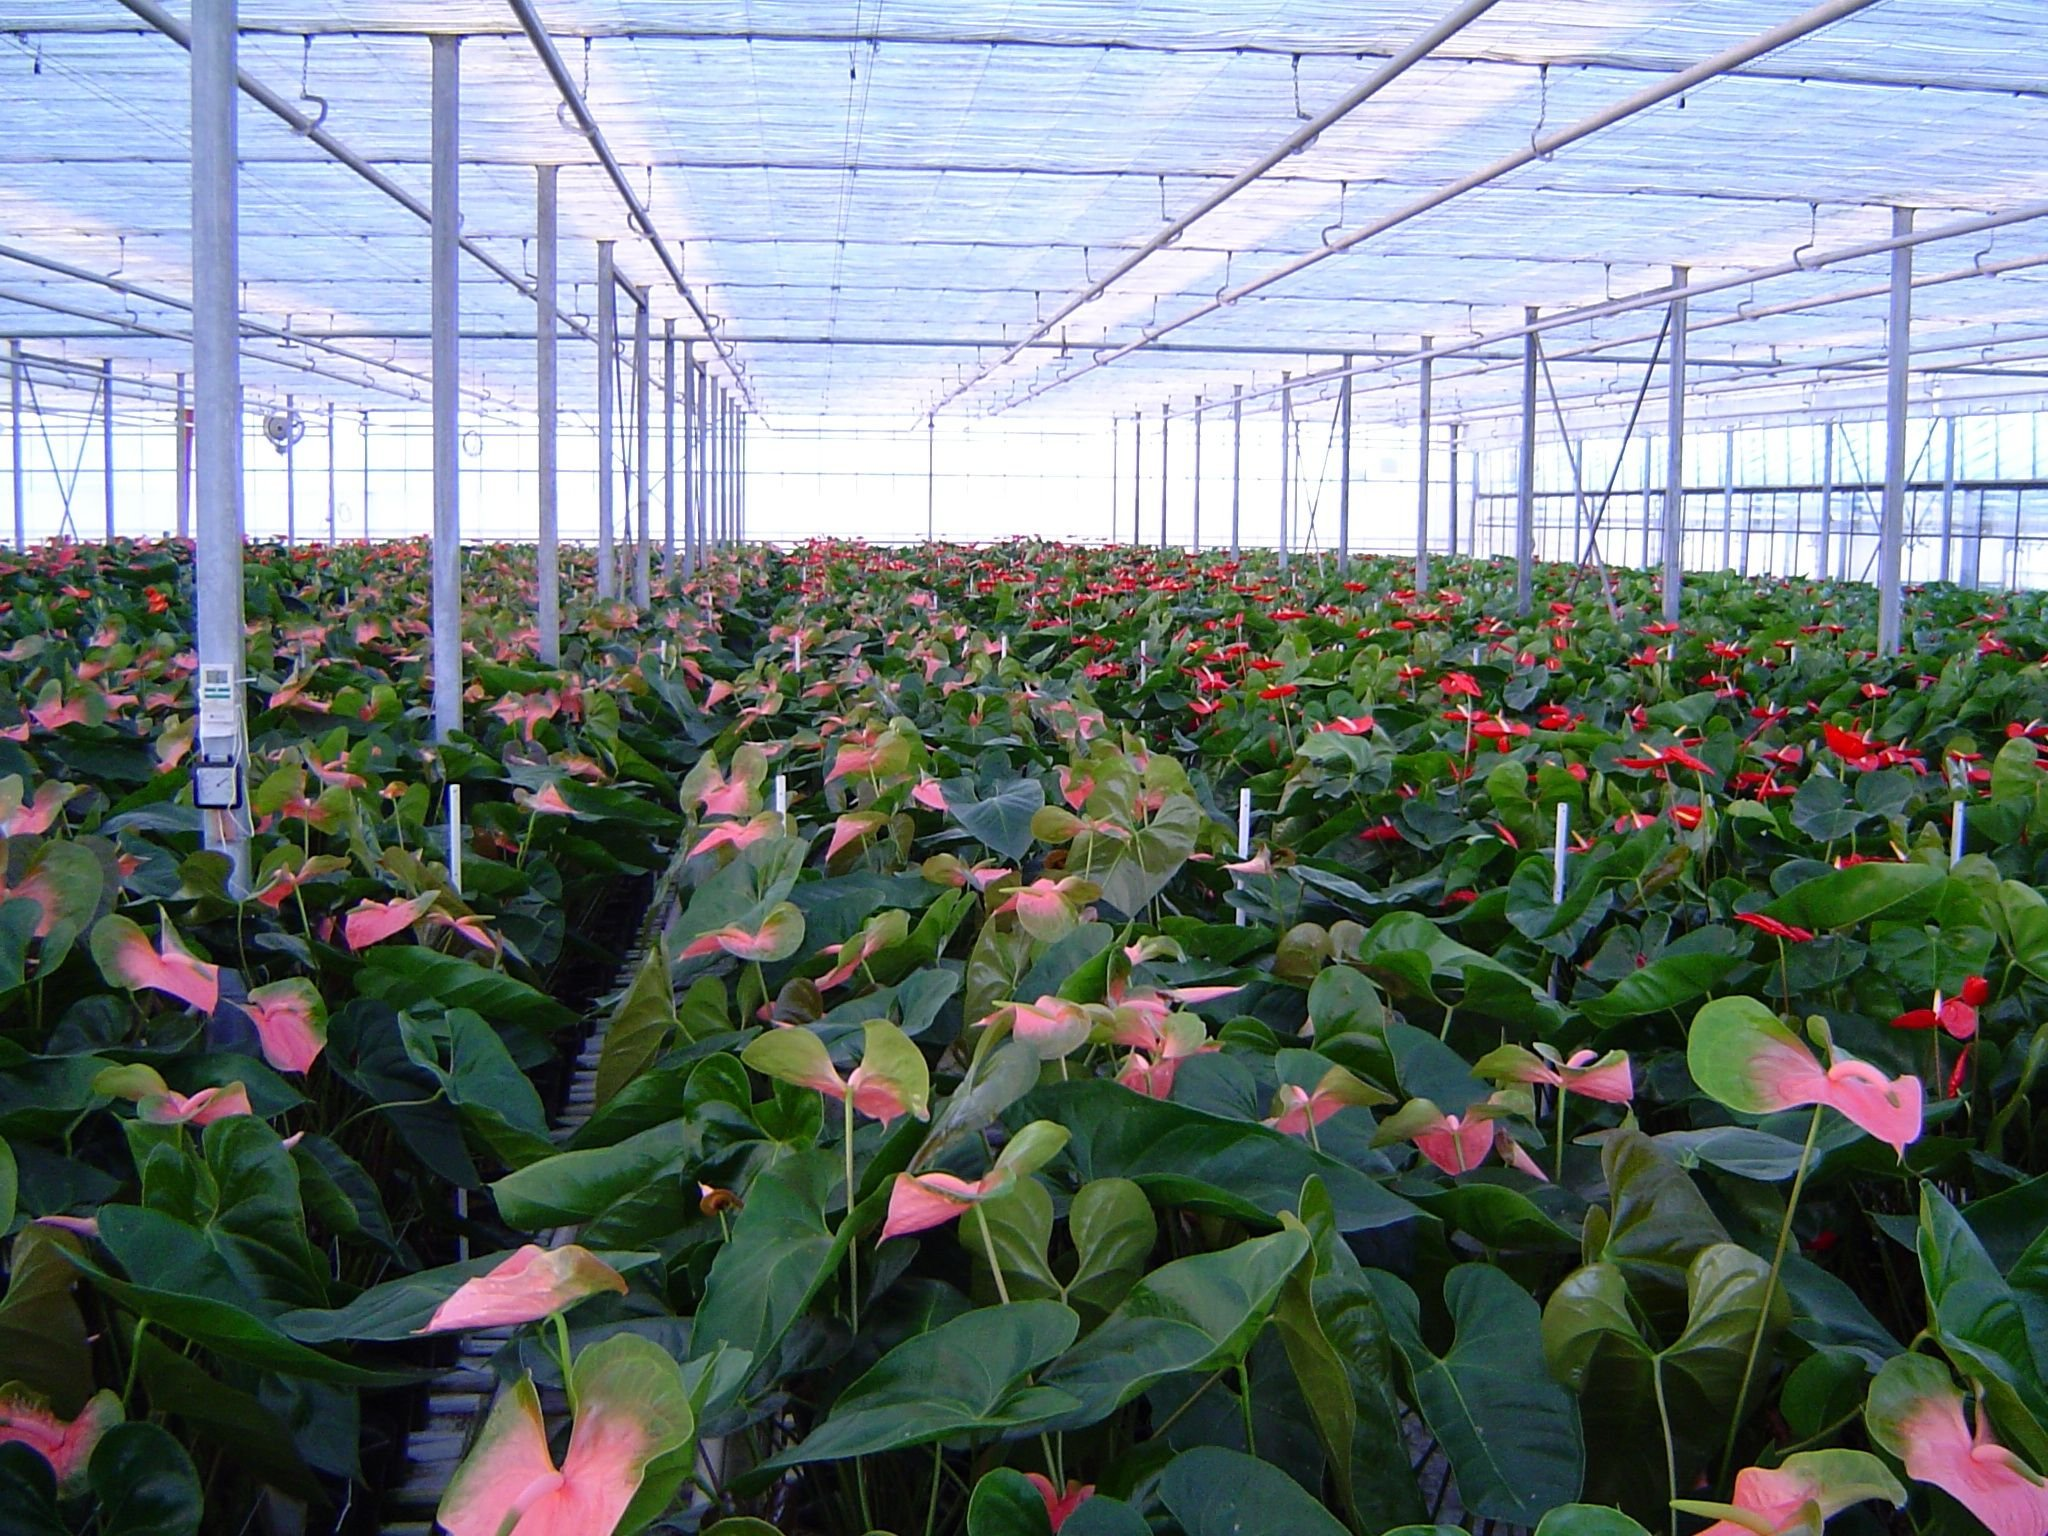 Anthurium Pink - Live House Plant - Easy to Grow - Florist Quality - Cleans the Air by Florida Foliage (Image #3)